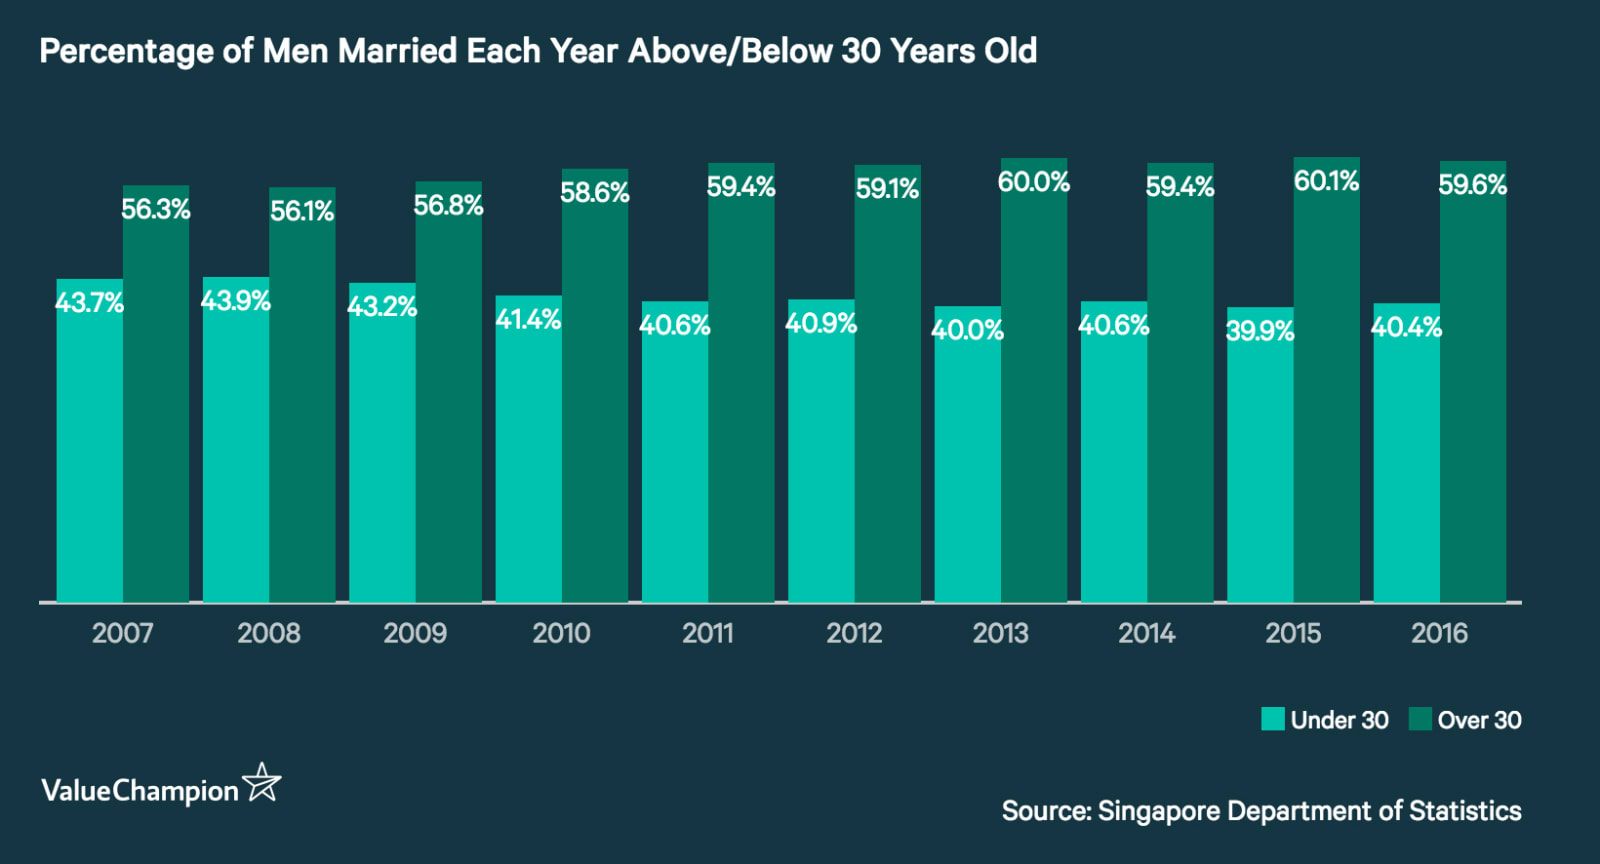 Percentage of Men Married Each Year Above/Below 30 Years Old